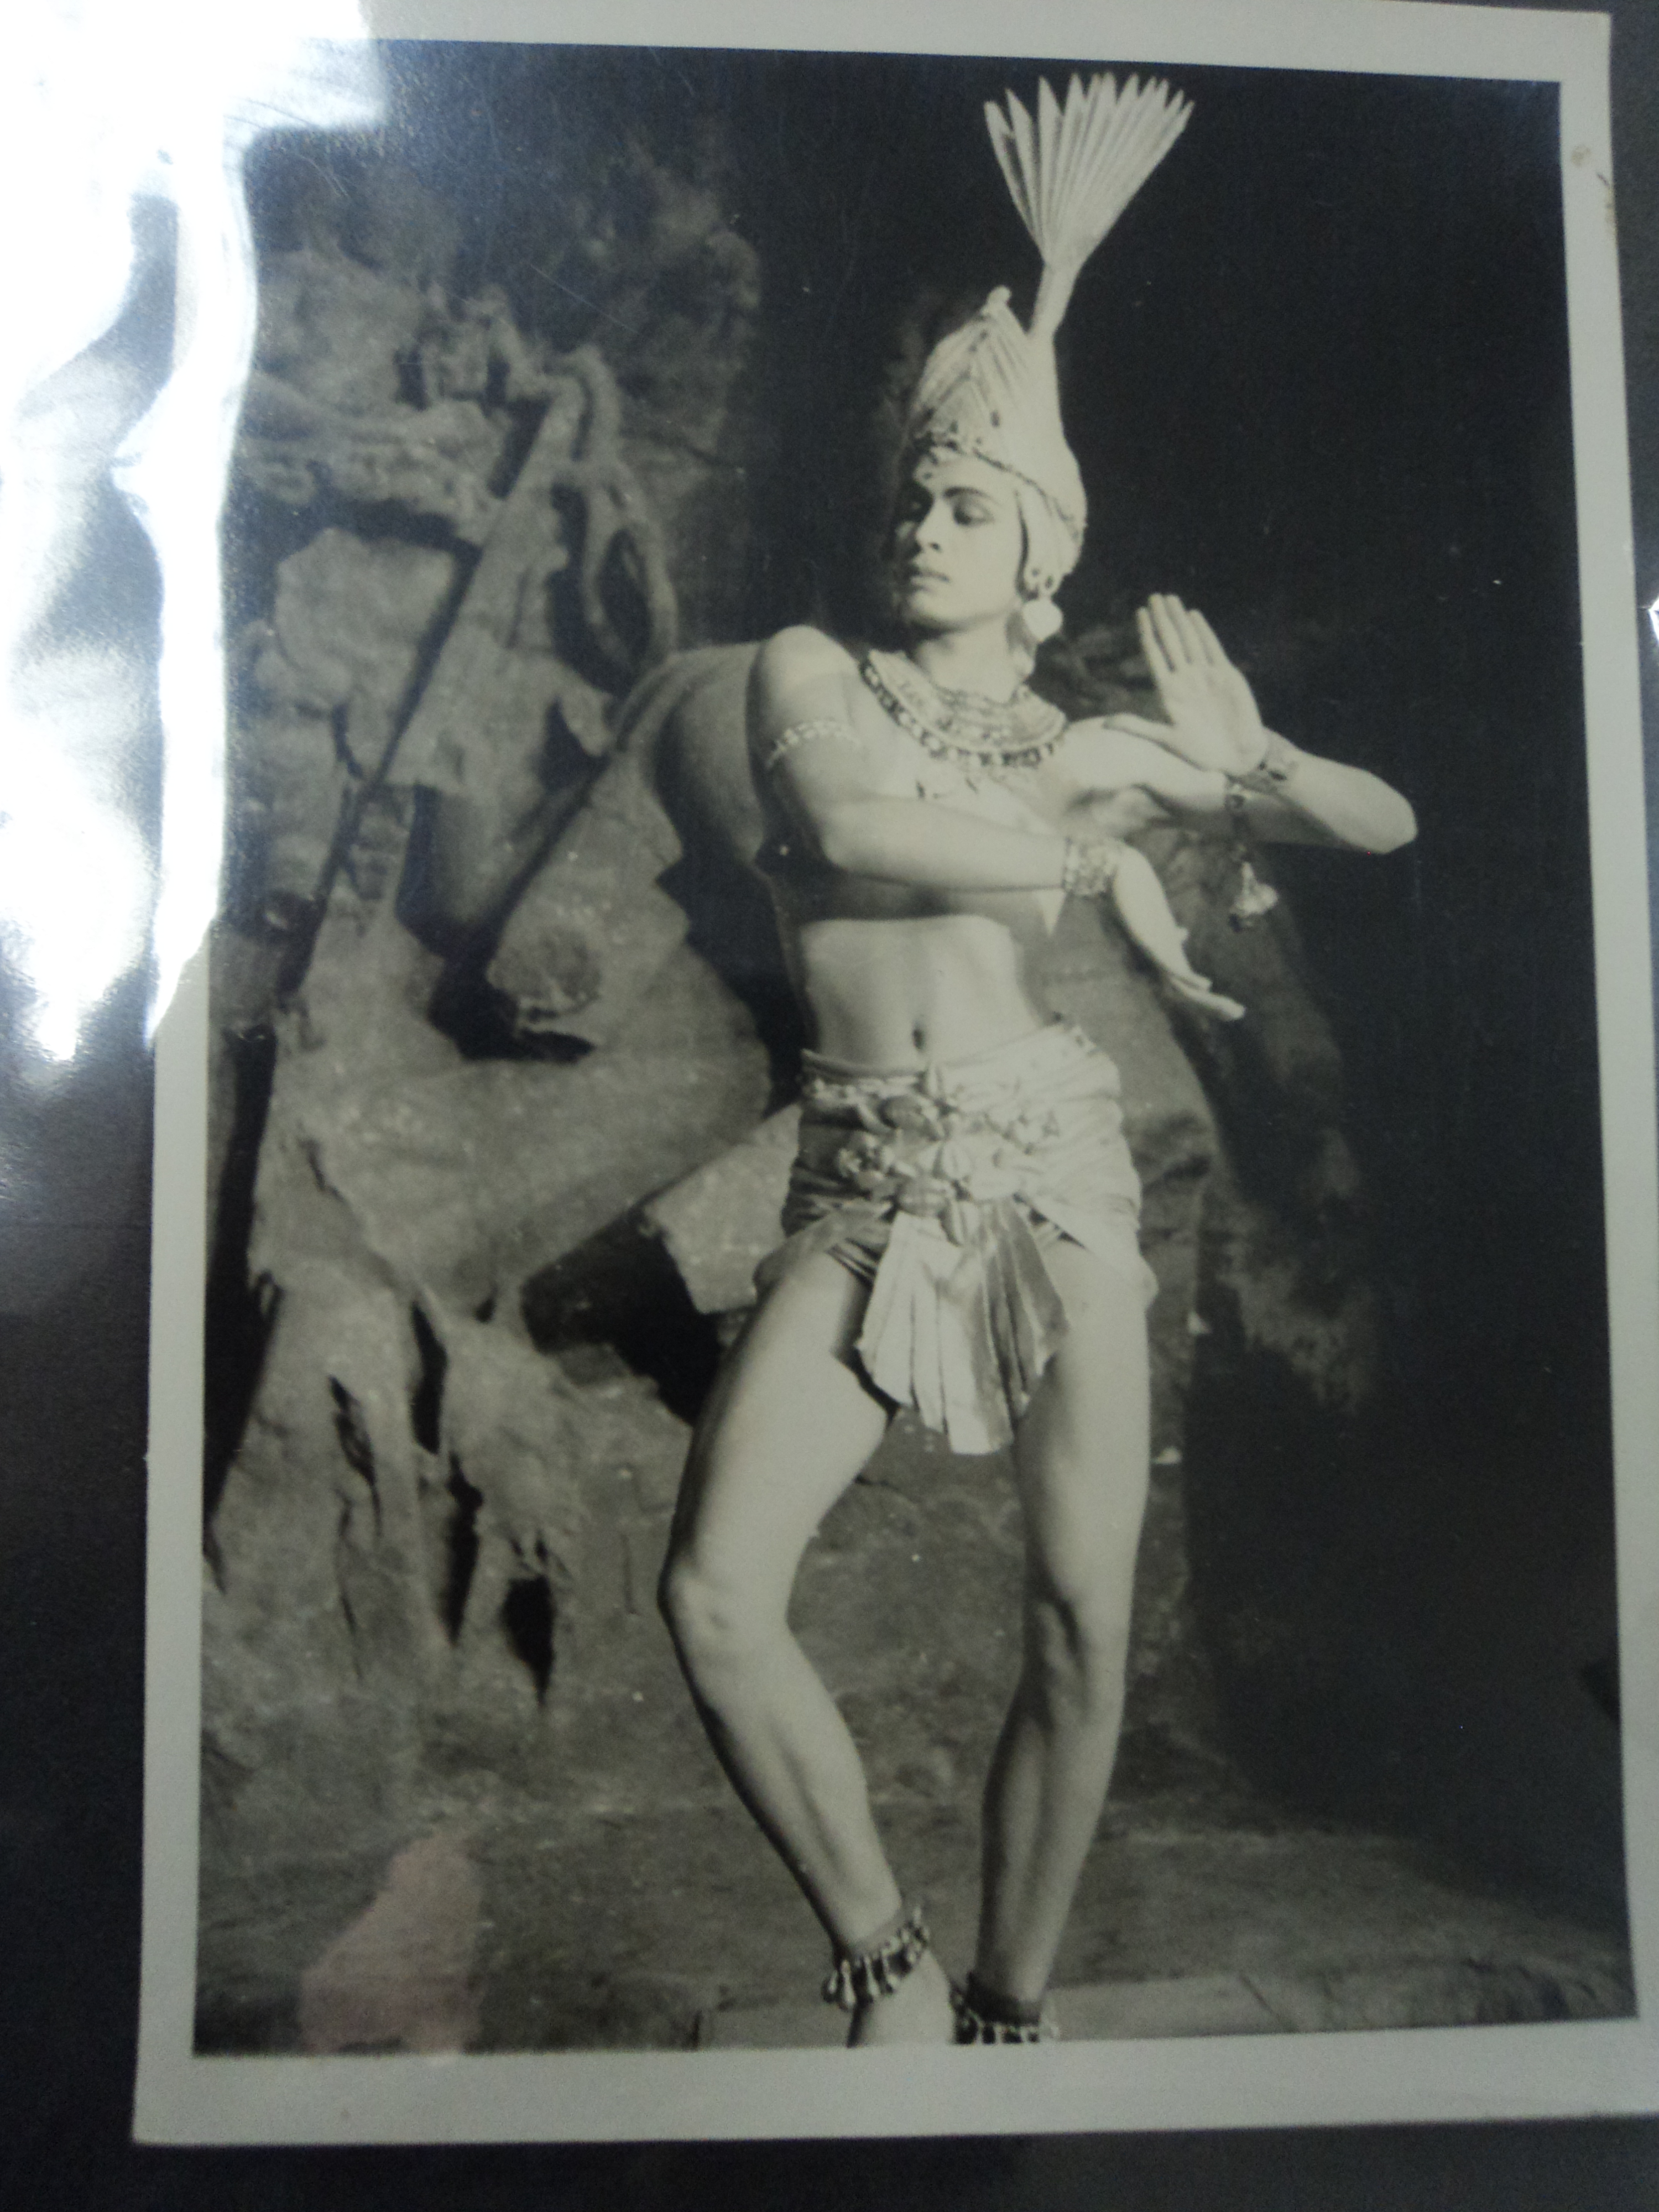 Ram Gopal, famous Indian dancer, posing as Siva. Photographer: Jepson, Stanley, British Library Photo 792(2481)